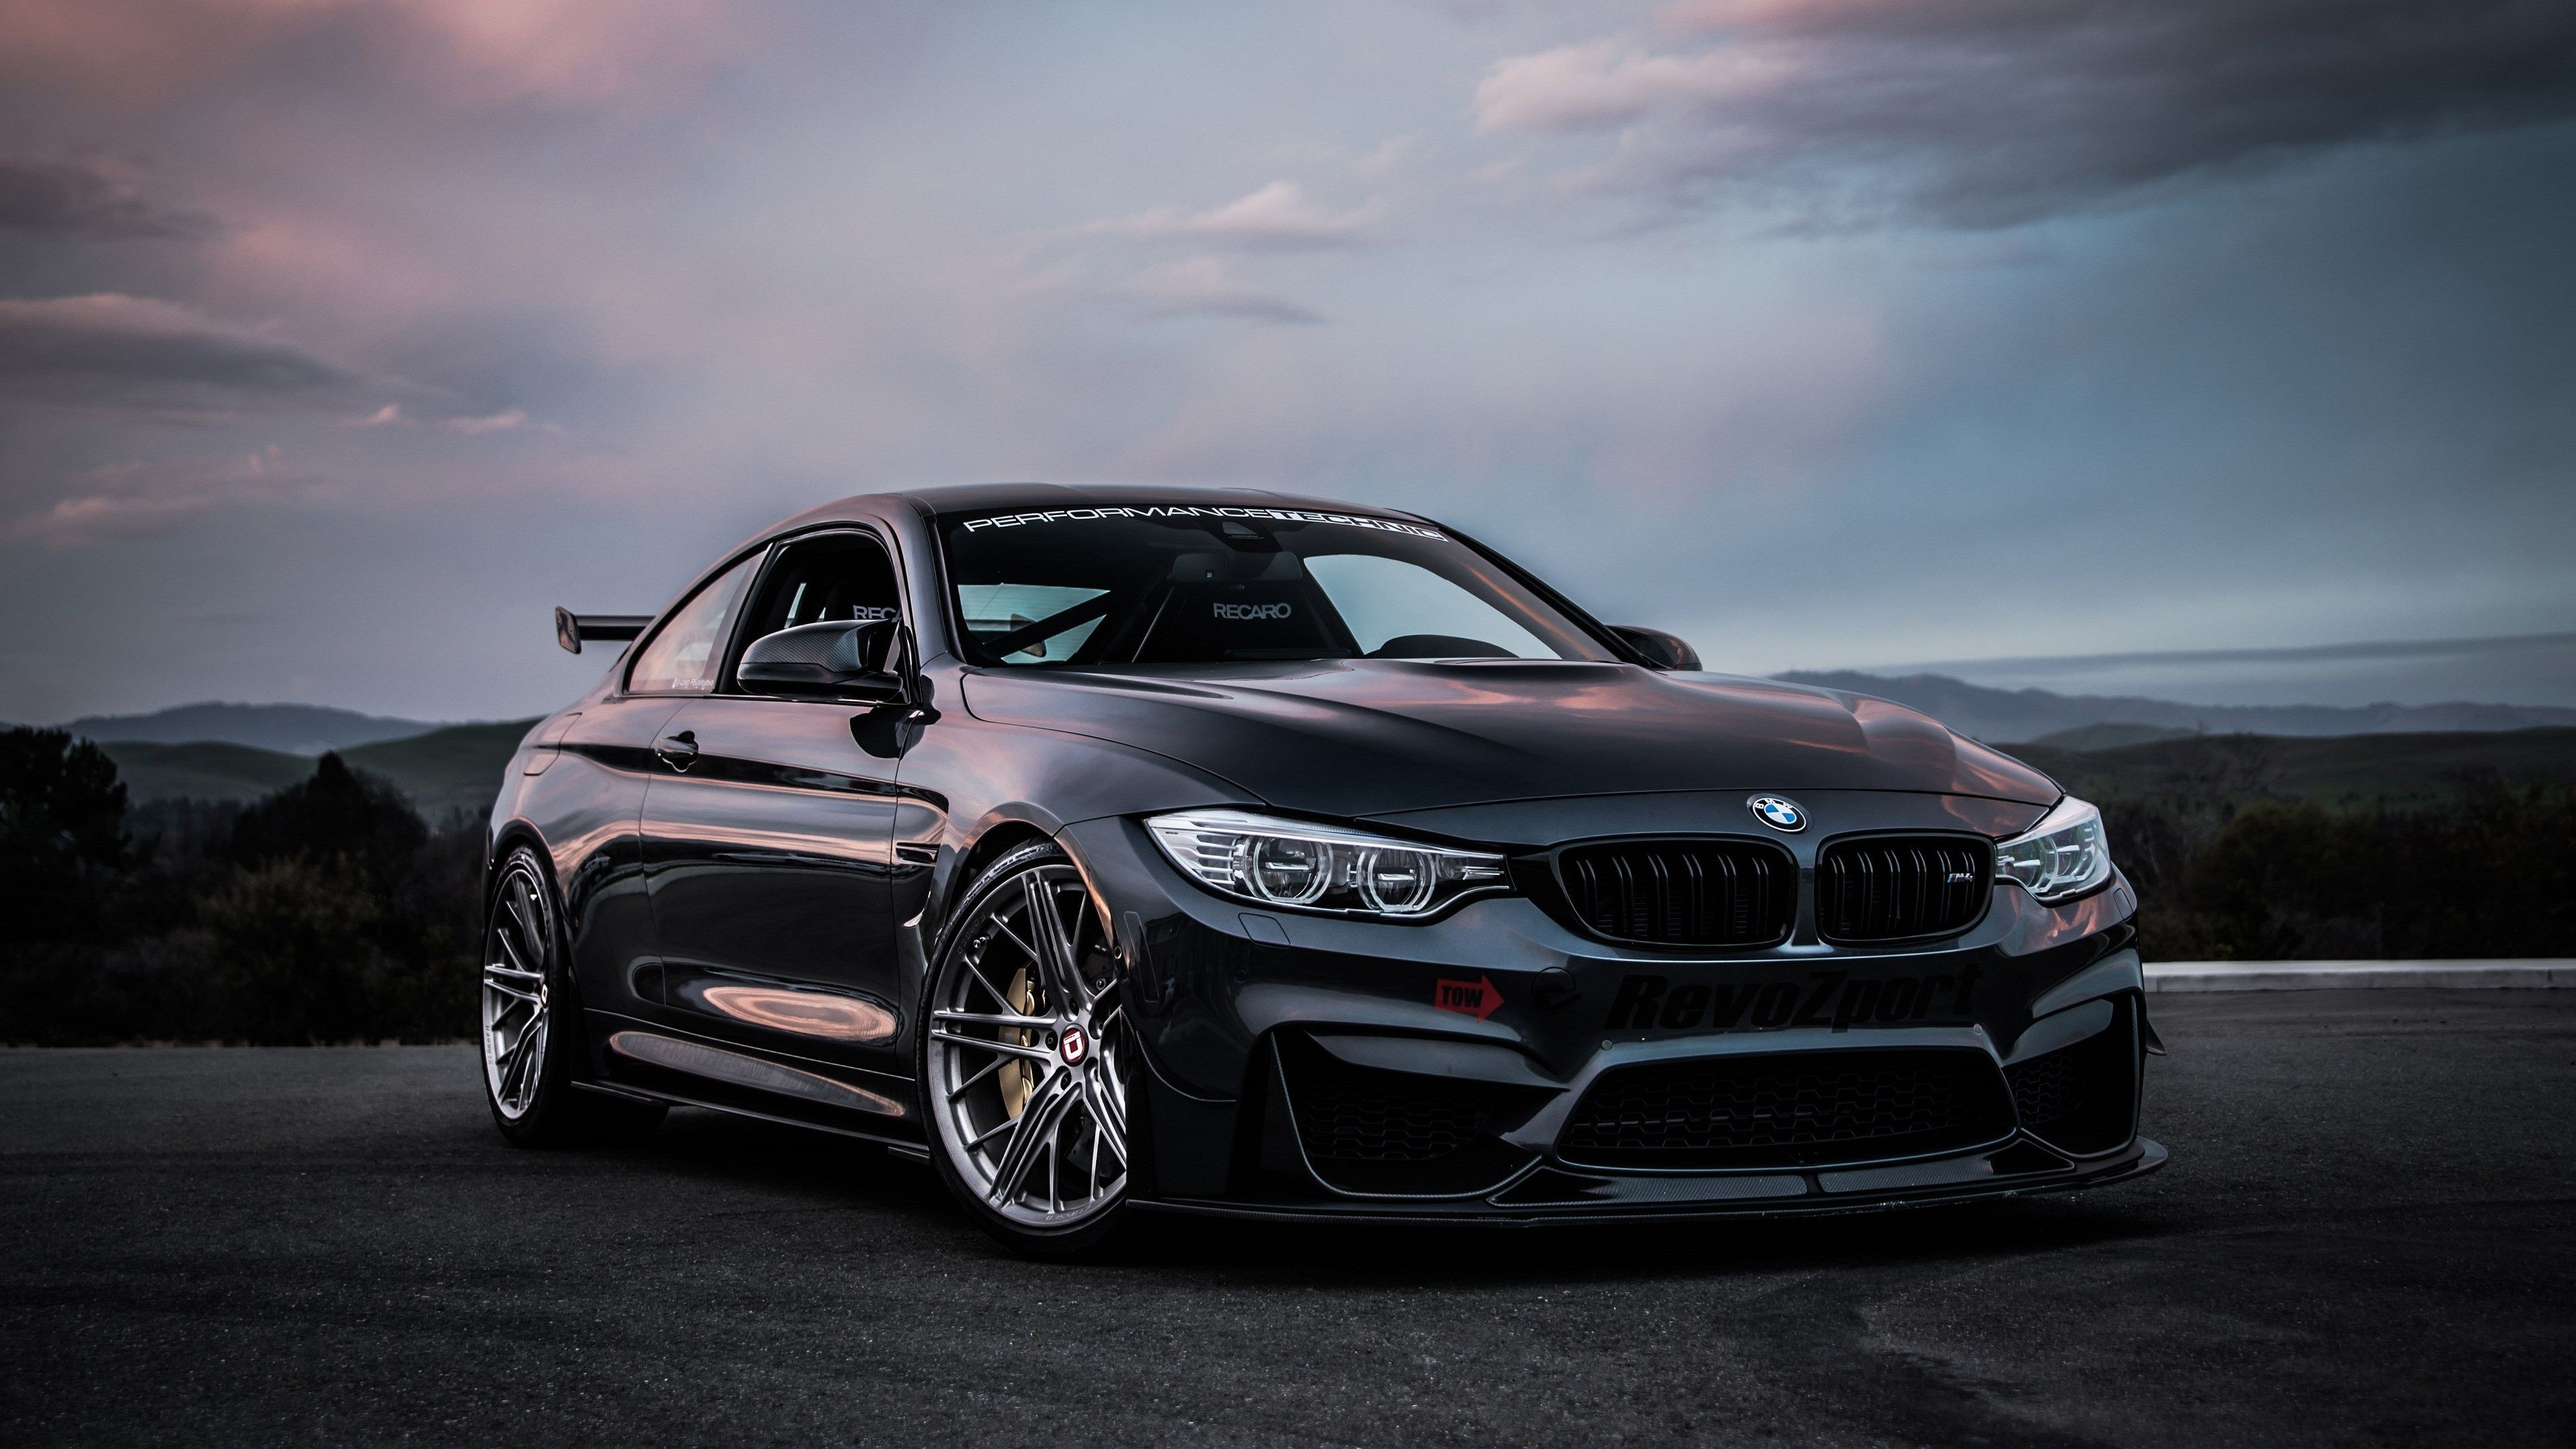 3840x2160 Bmw M4 4k Hd Wallpaper For Pc Download Mobil